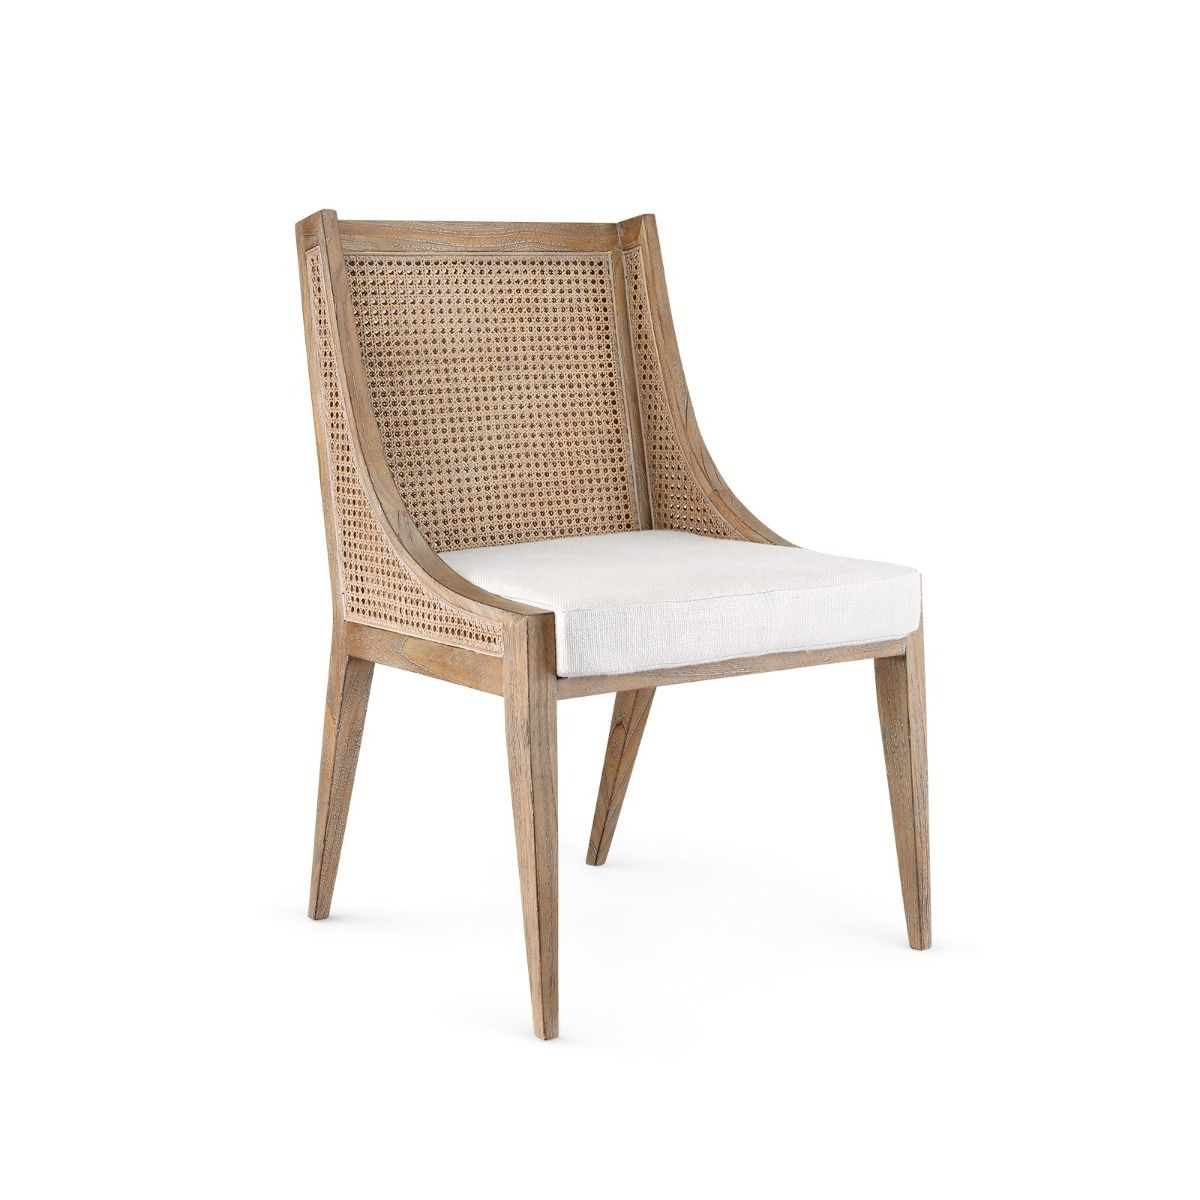 Bungalow 5 - RALEIGH ARMCHAIR, DRIFTWOOD